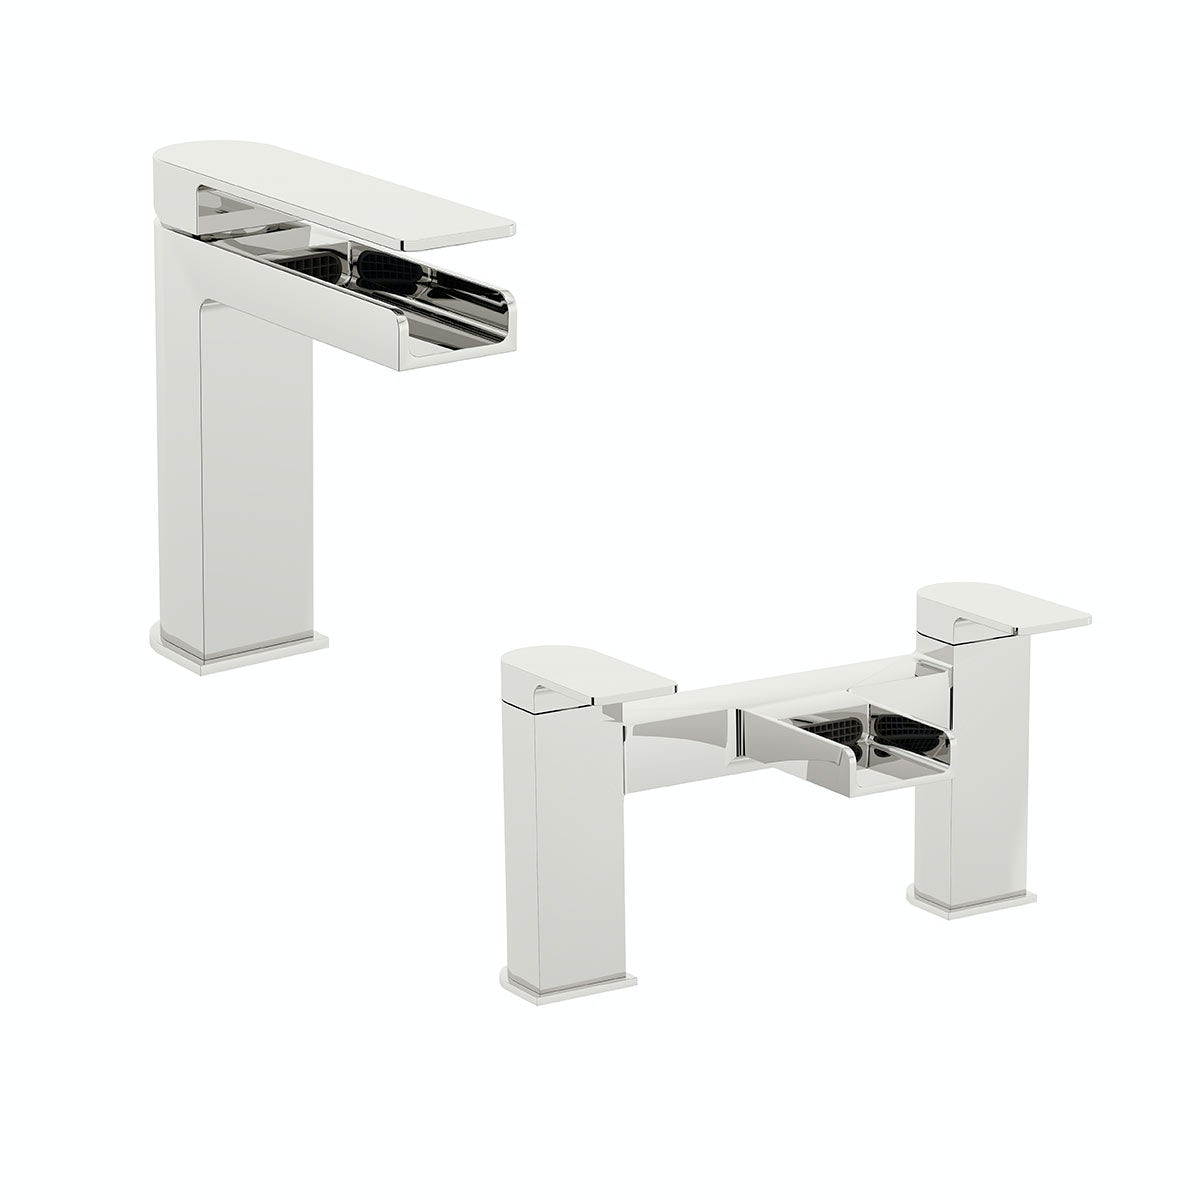 Mode Cooper basin and bath mixer tap pack